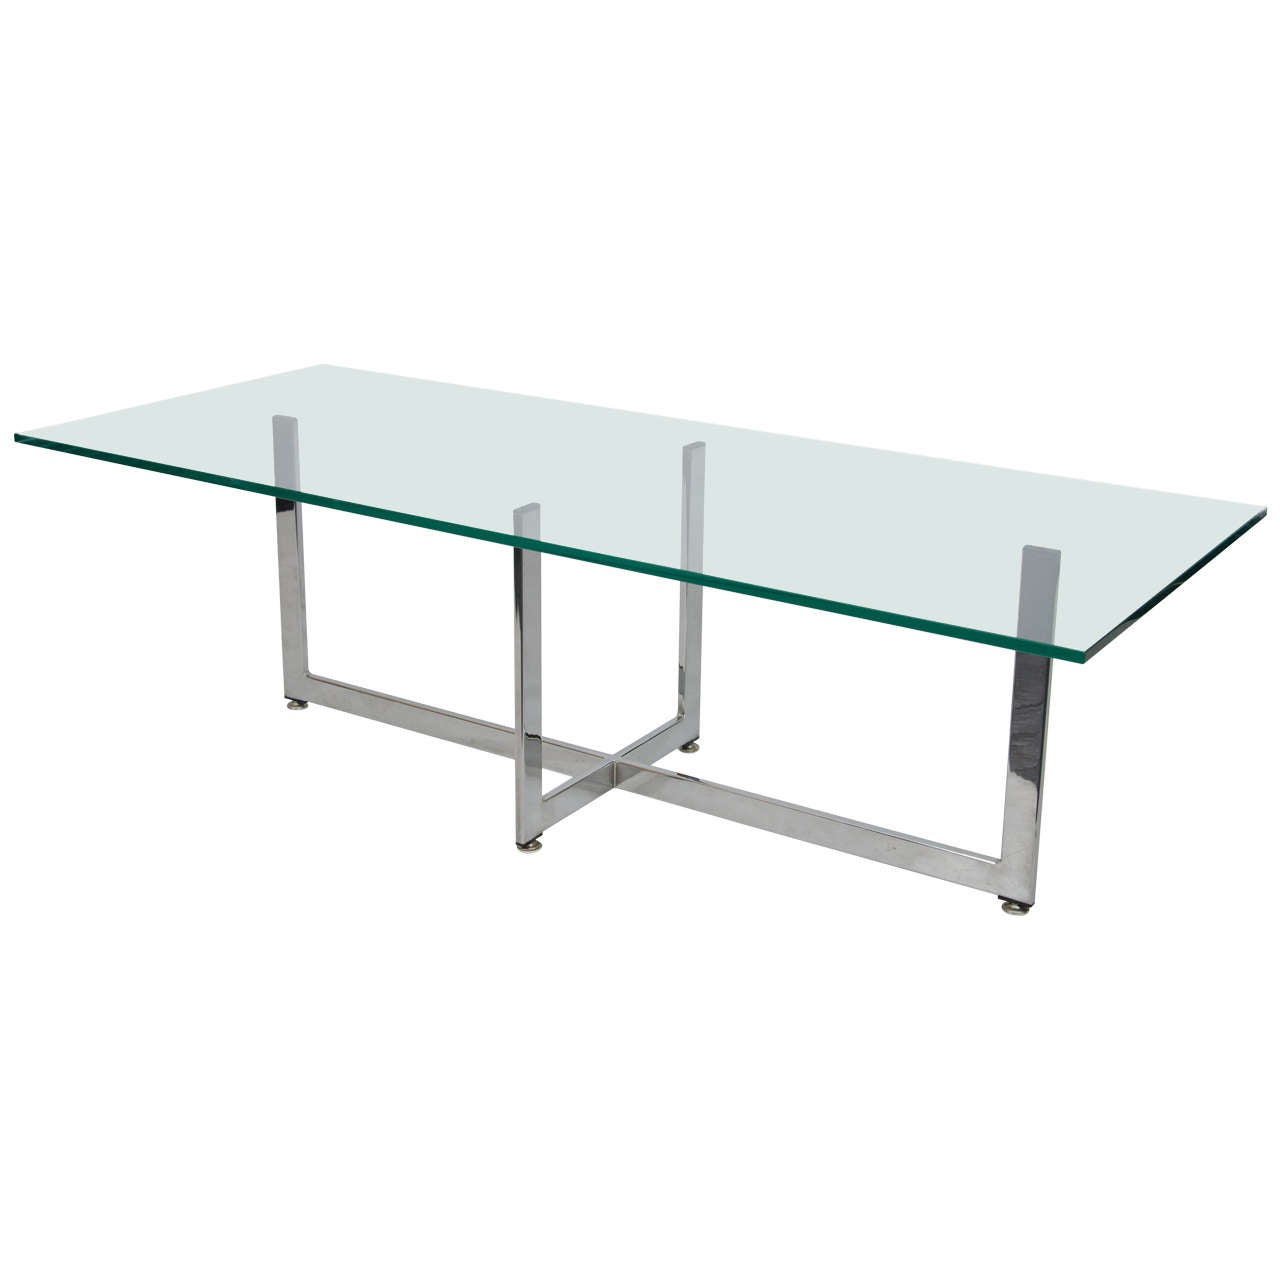 Rectangular Coffee Table With Glass Top And Curved Chrome: Floating Rectangular Glass And Chrome Coffee Table At 1stdibs